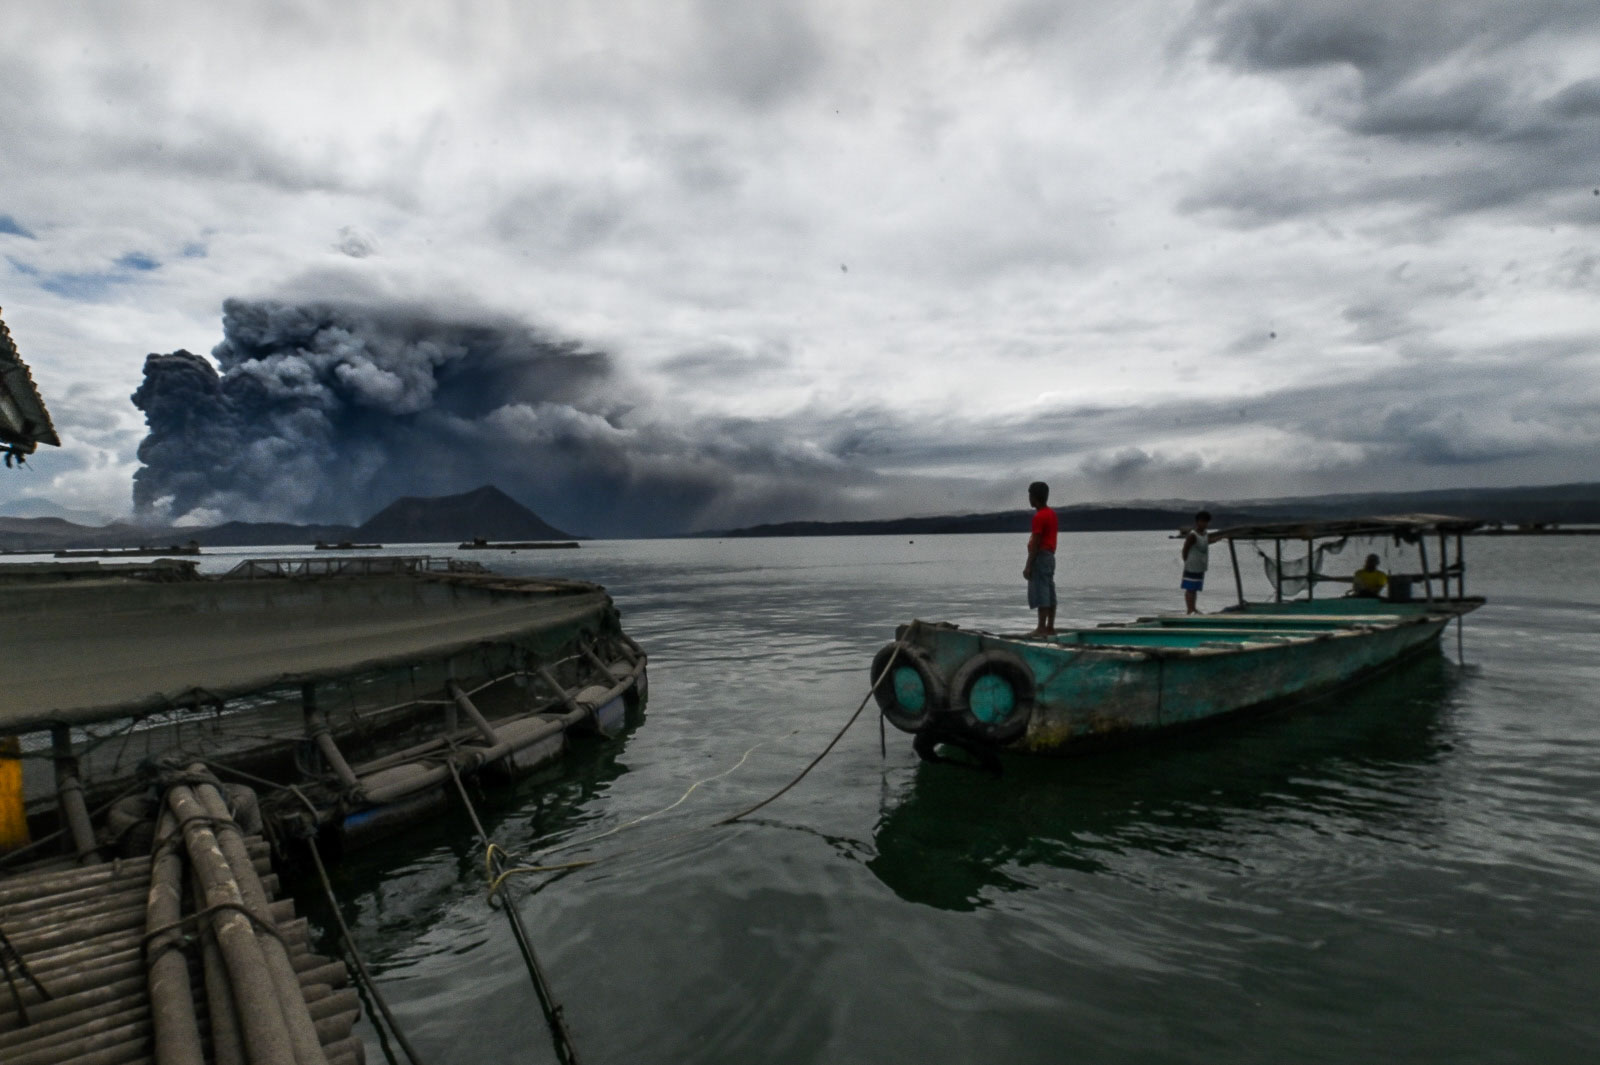 AWAKE. Fisherman Rolando Leanos watches from his boat in Laurel, Batangas, on January 13, 2020, as Taal Volcano spews ash. File photo by Alecs Ongcal/Rappler